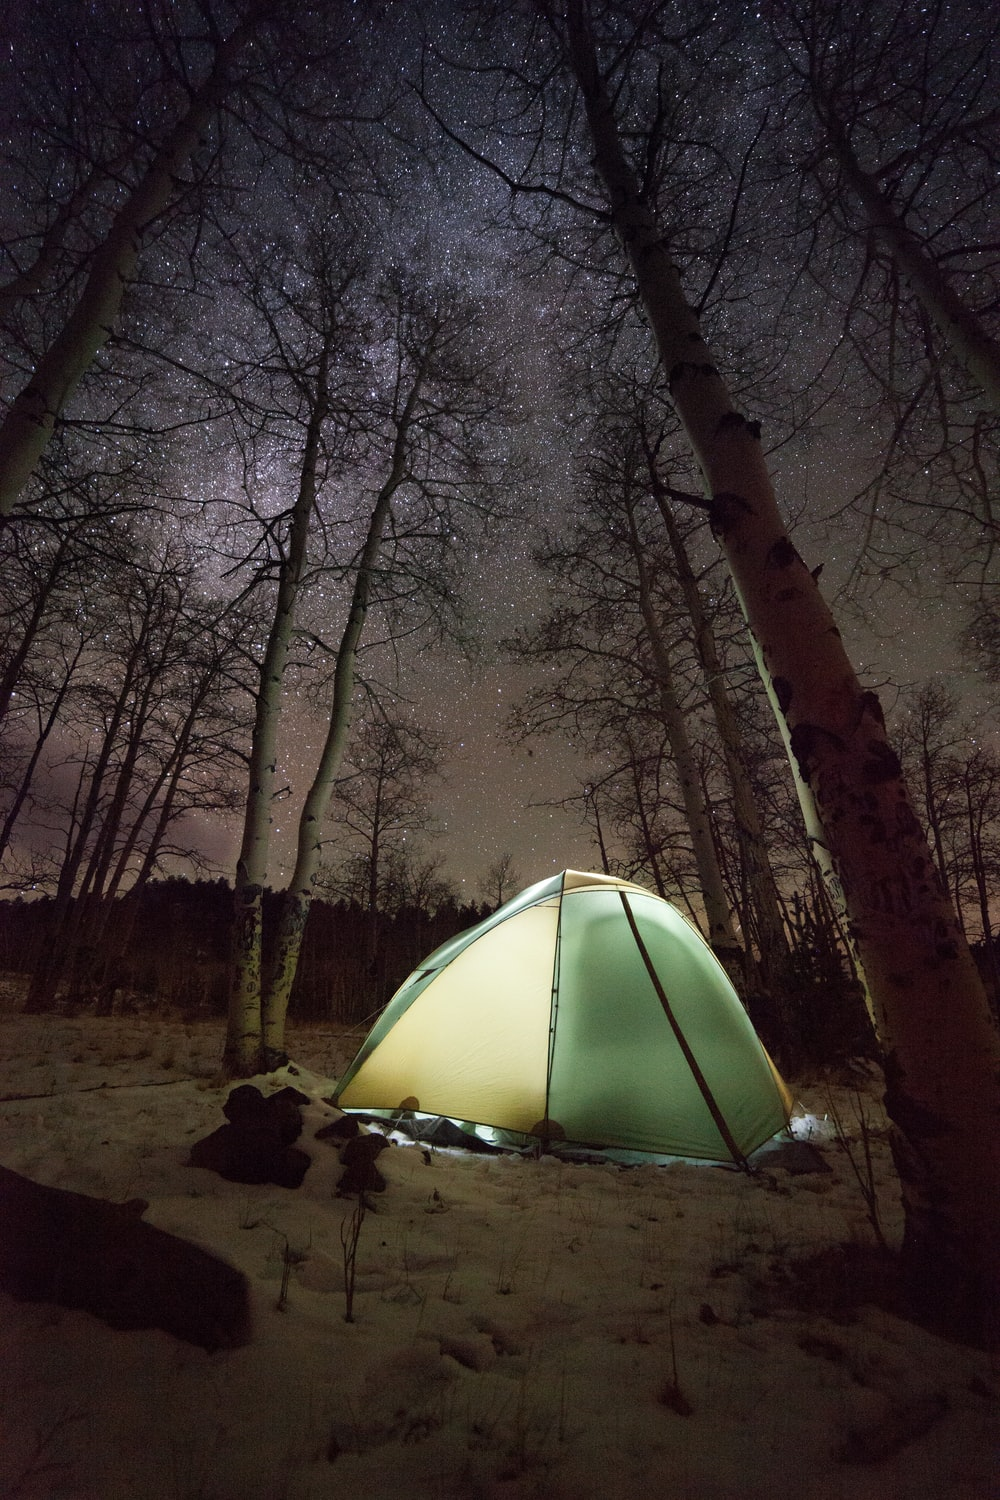 dome tent surrounded with bare trees during night time